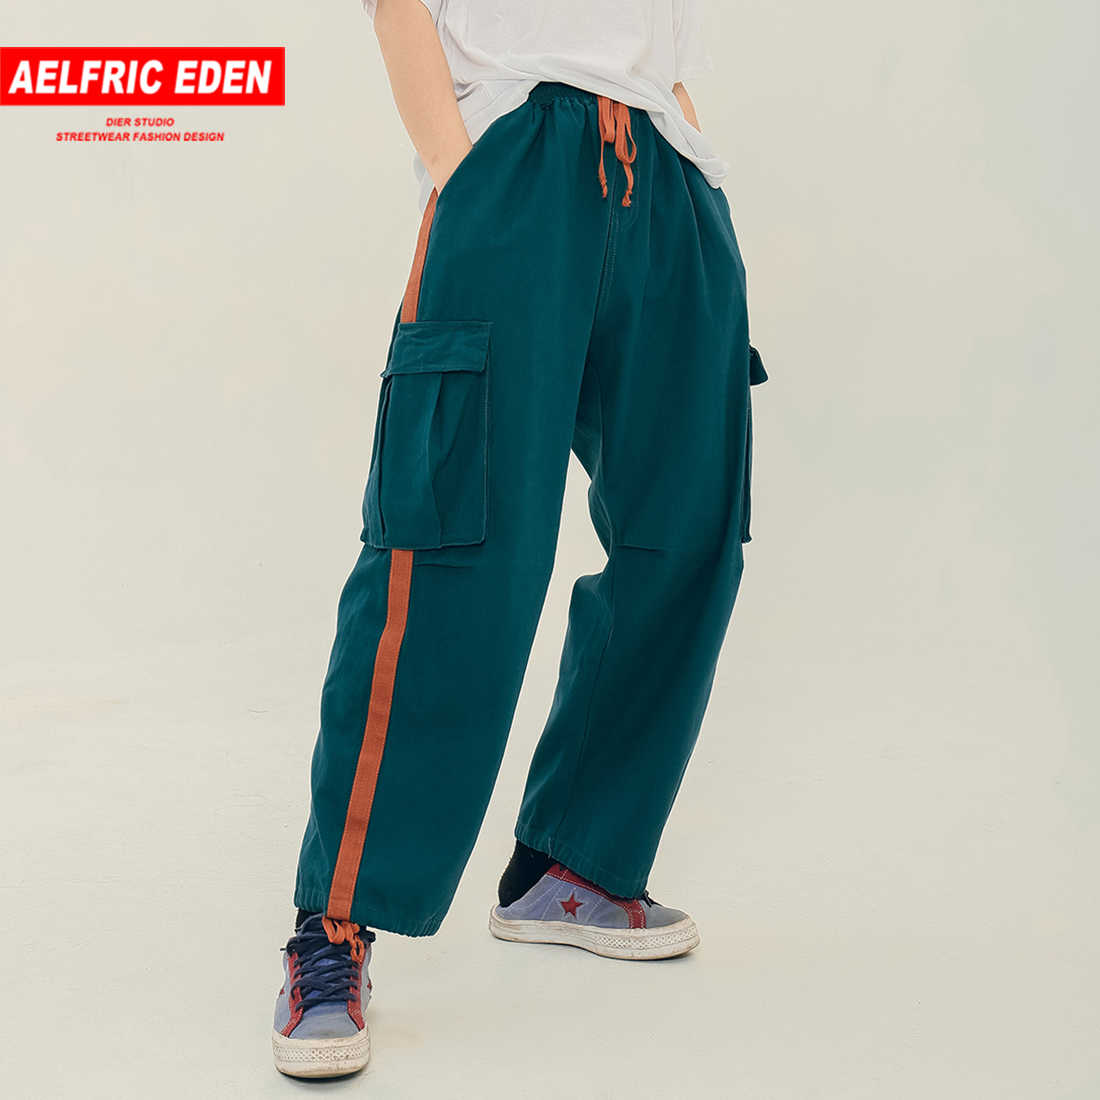 acb74db9b7f1 Aelfric Eden Side Striped Color Patchwork Harem Pants Men 2019 Spring Summer  Fashion Streetwear Casual Trousers